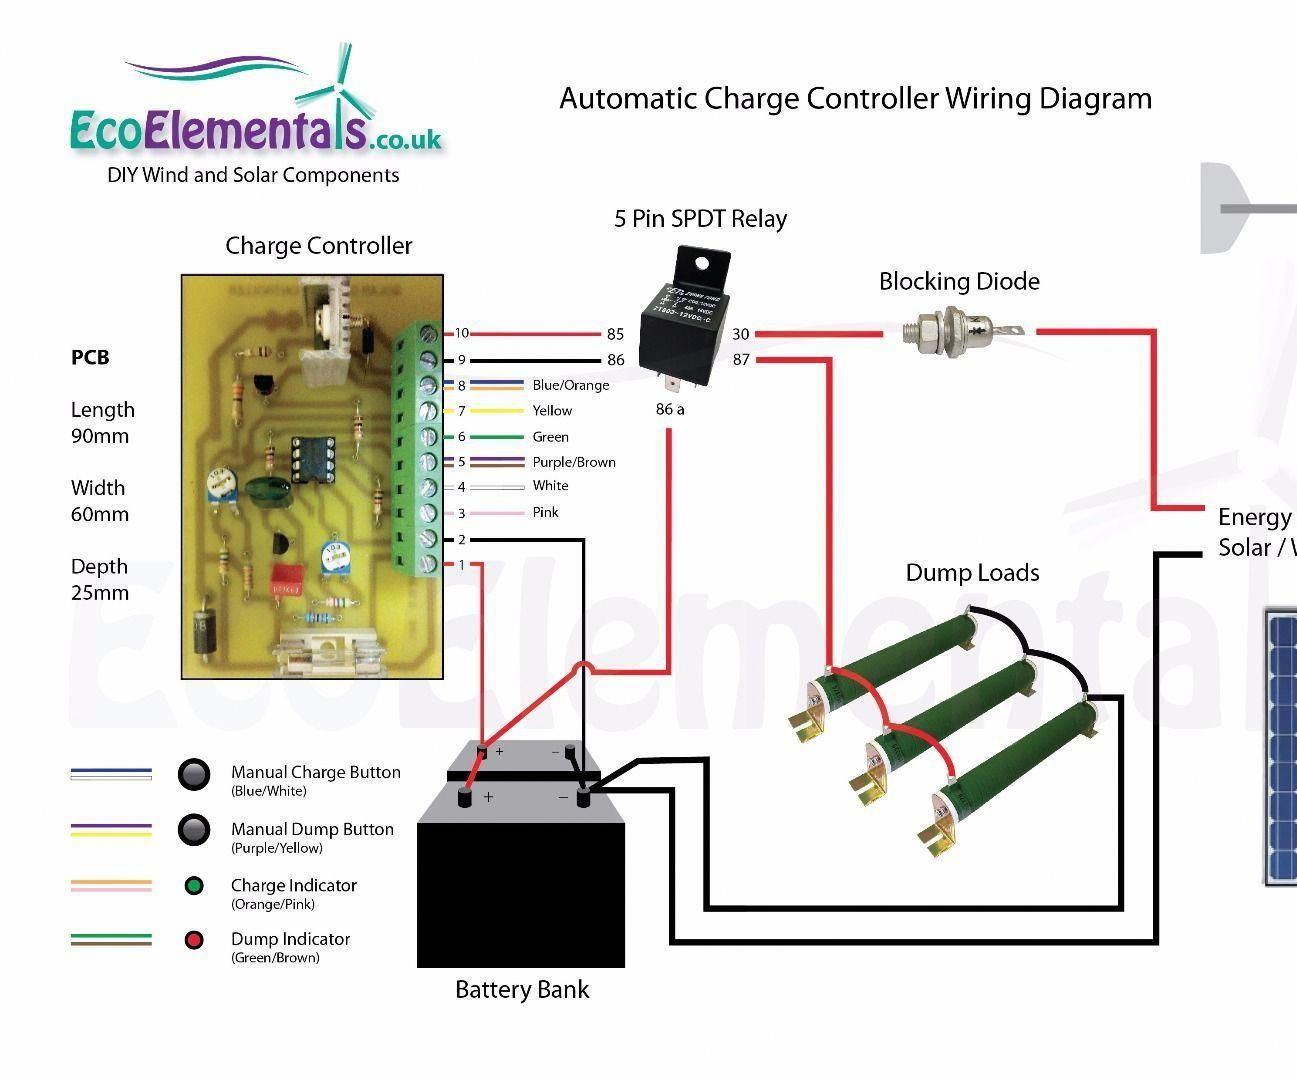 hight resolution of charge controller wiring diagram for diy wind turbine or solar panels solarpanels